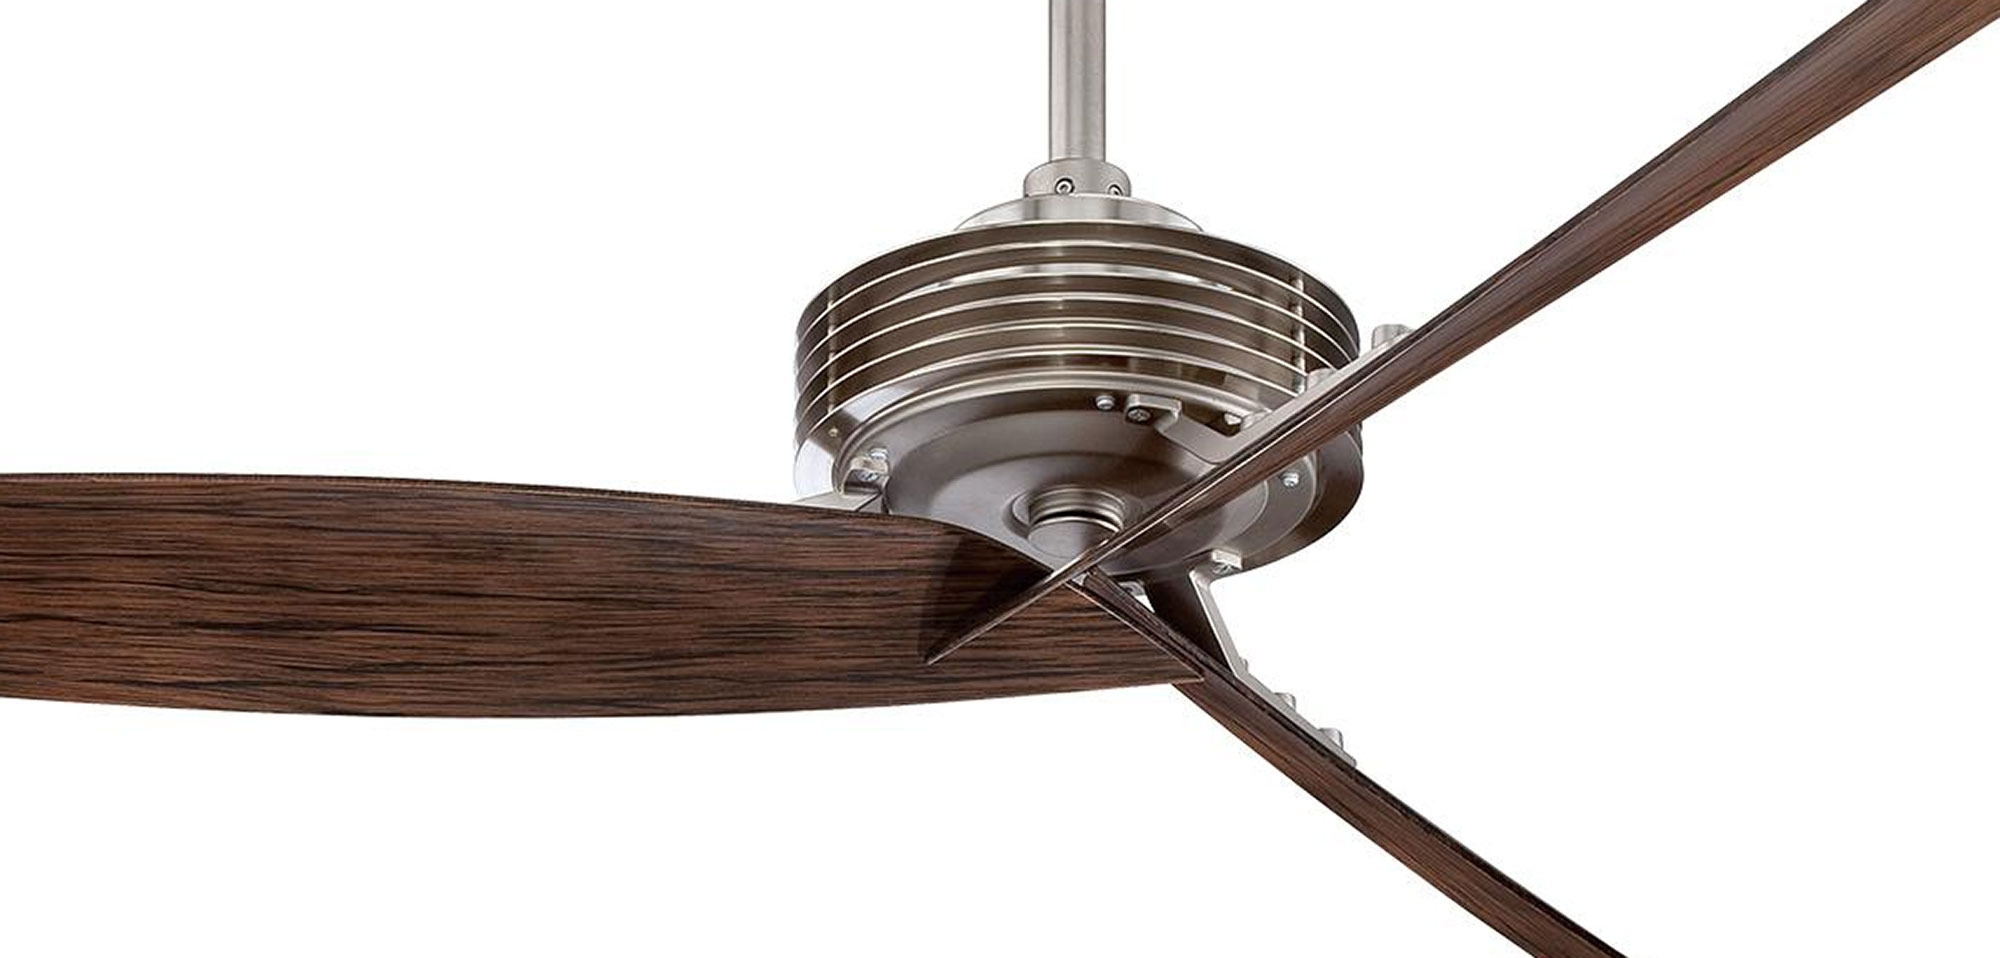 Unique Ceiling Fans For Modern Home Design – Interior Decorating Regarding Fashionable Quality Outdoor Ceiling Fans (View 19 of 20)